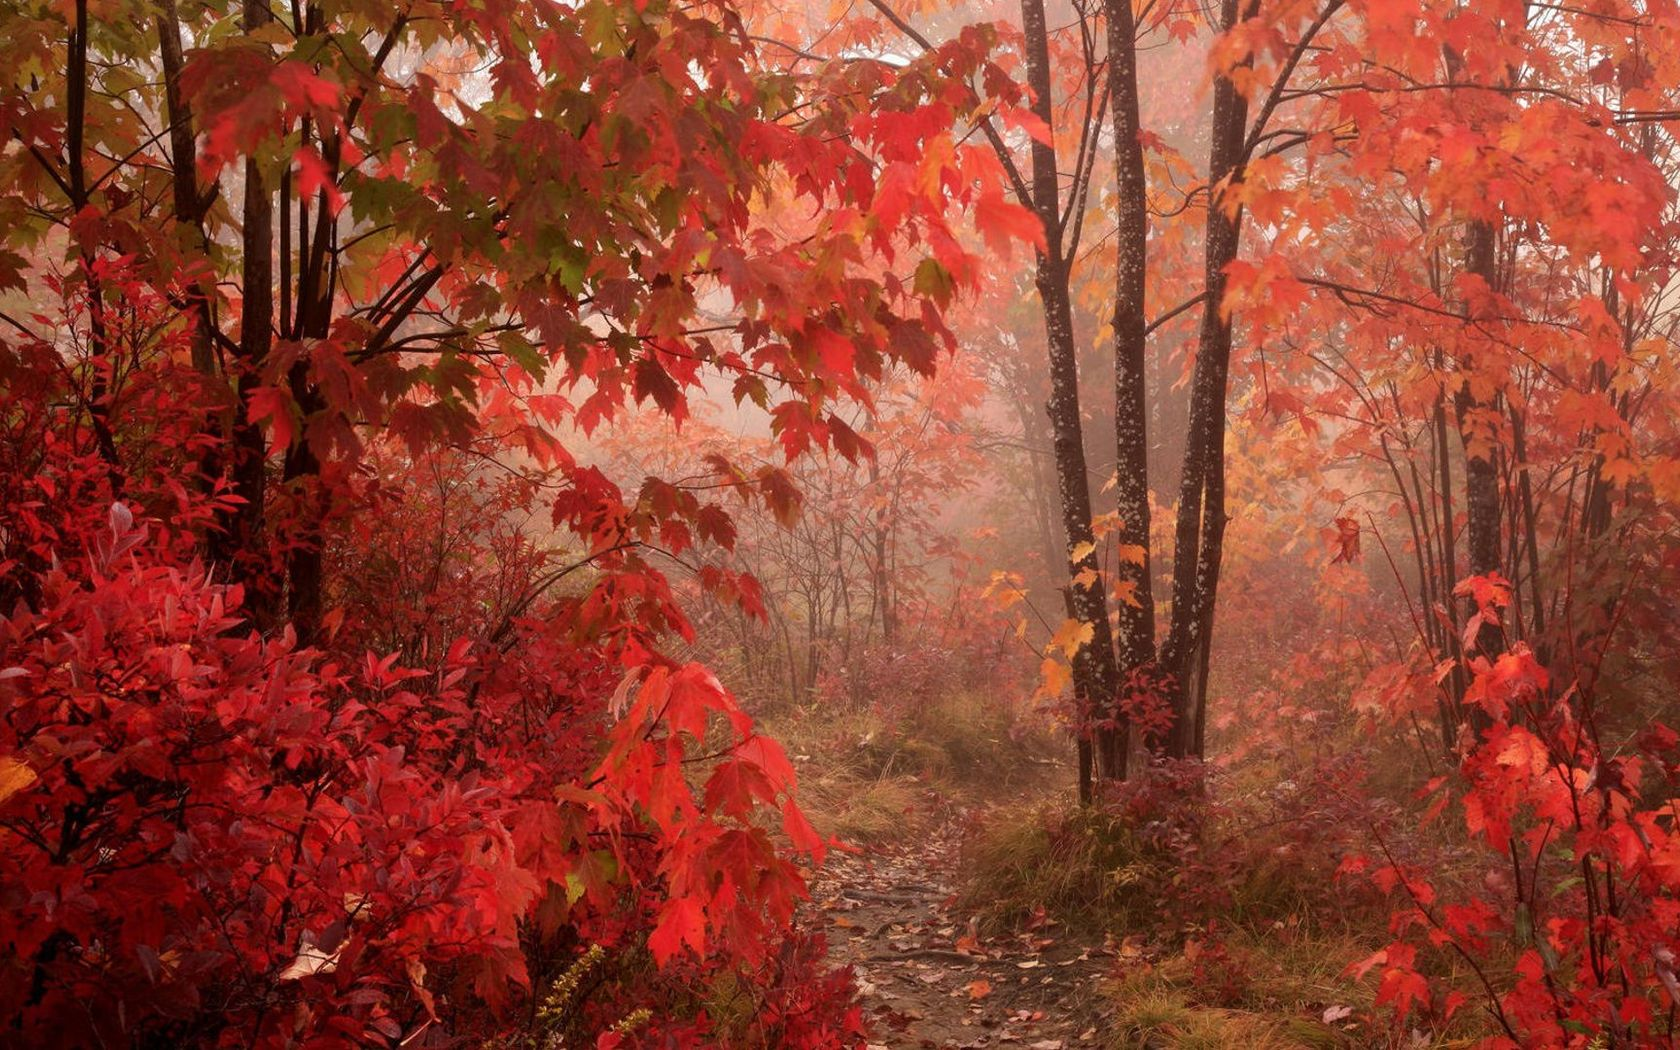 Pixel Forest Wallpaper Cute 8 Red Autumn Forest Wallpaper 41017 868 Autumn Red